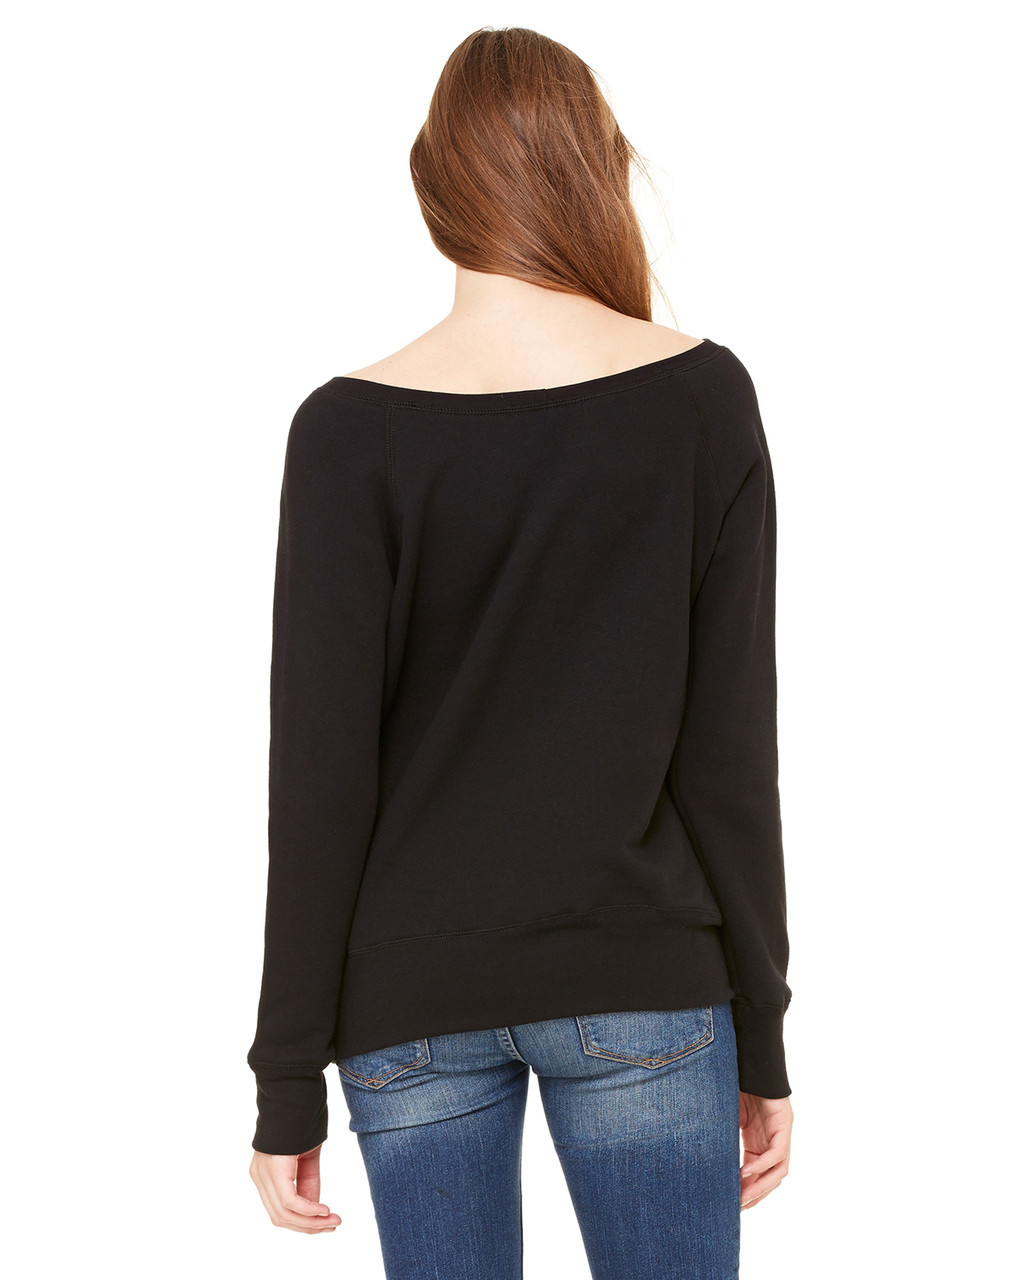 Black, Back - 7501 Bella+Canvas Fleece Wide Neck Sweatshirt | Blankclothing.ca